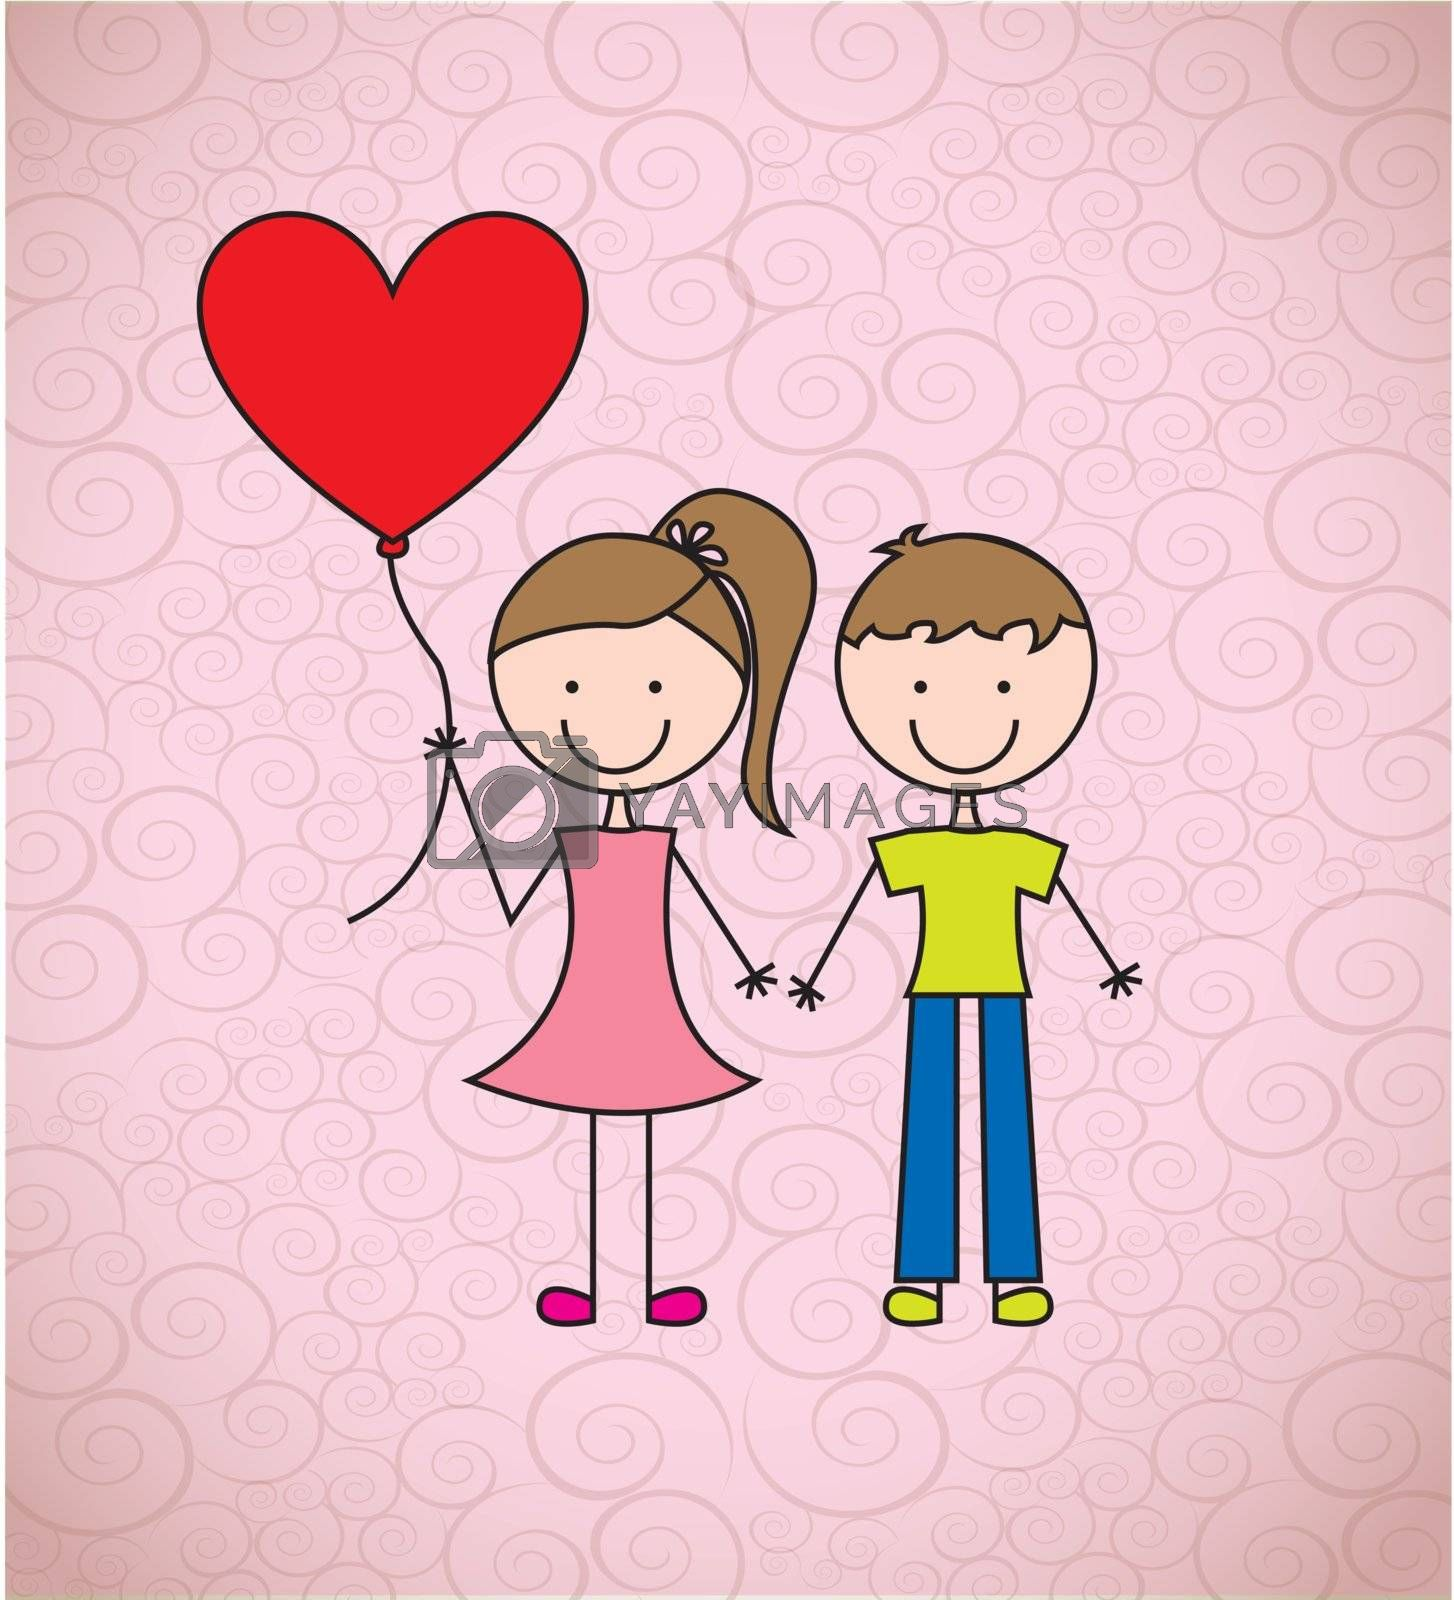 love card with childrens to celebrate valentines day vector illustration